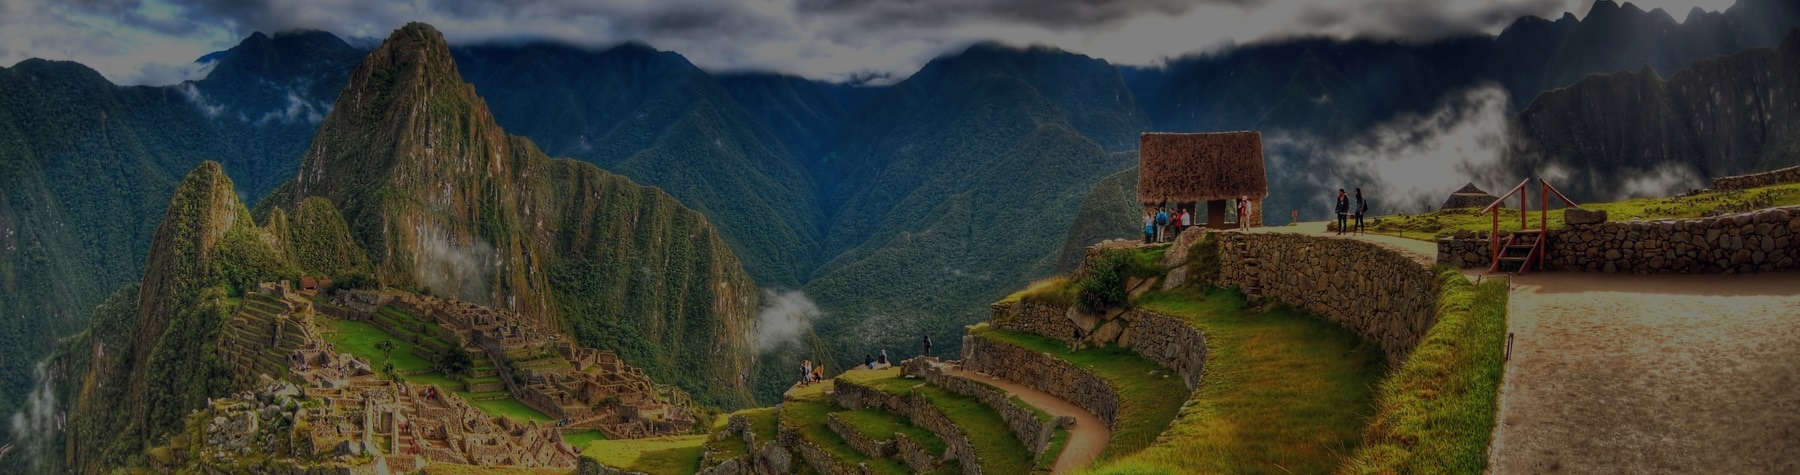 Senior Luxury Travel Peru 2019